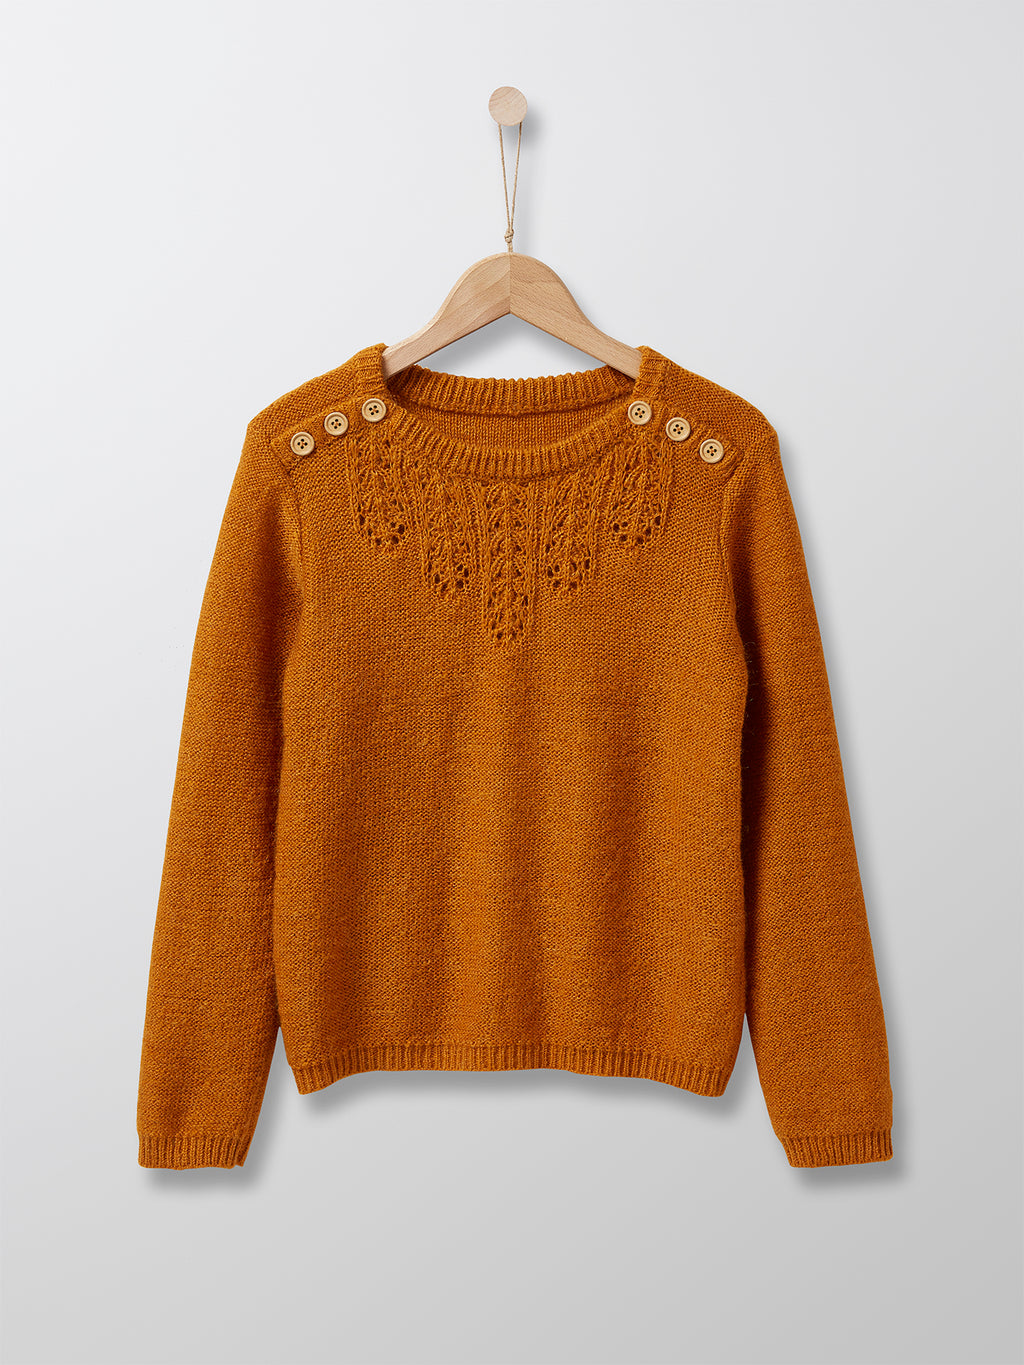 Cyrillus Paris | Girl's Knit Sweater | Mustard | 3Y, 4Y, 6Y